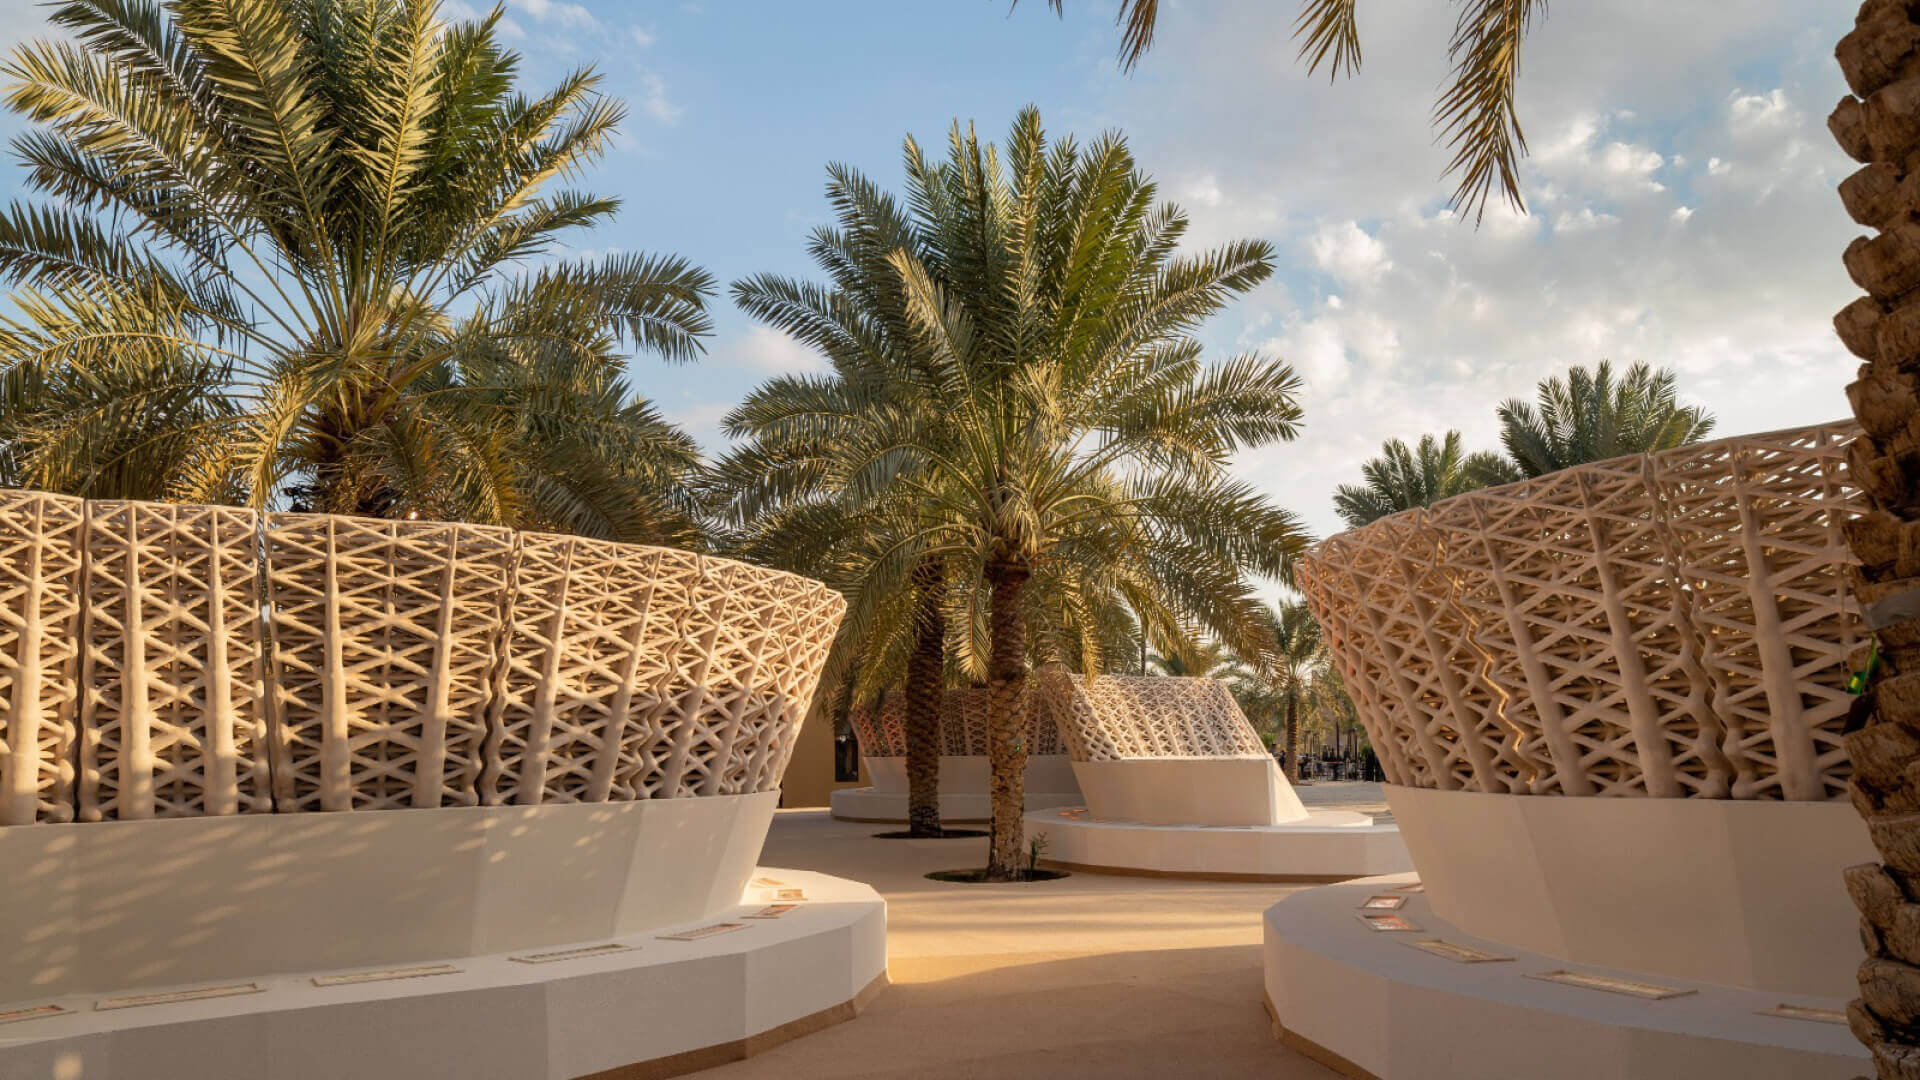 'Sandwaves' in Saudi Arabia designed by Arthur Mamou-Mani and Chris Precht as the largest 3D printed sand pavilion | Cross Border Conversations | STIR X LOCO Design | STIRworld